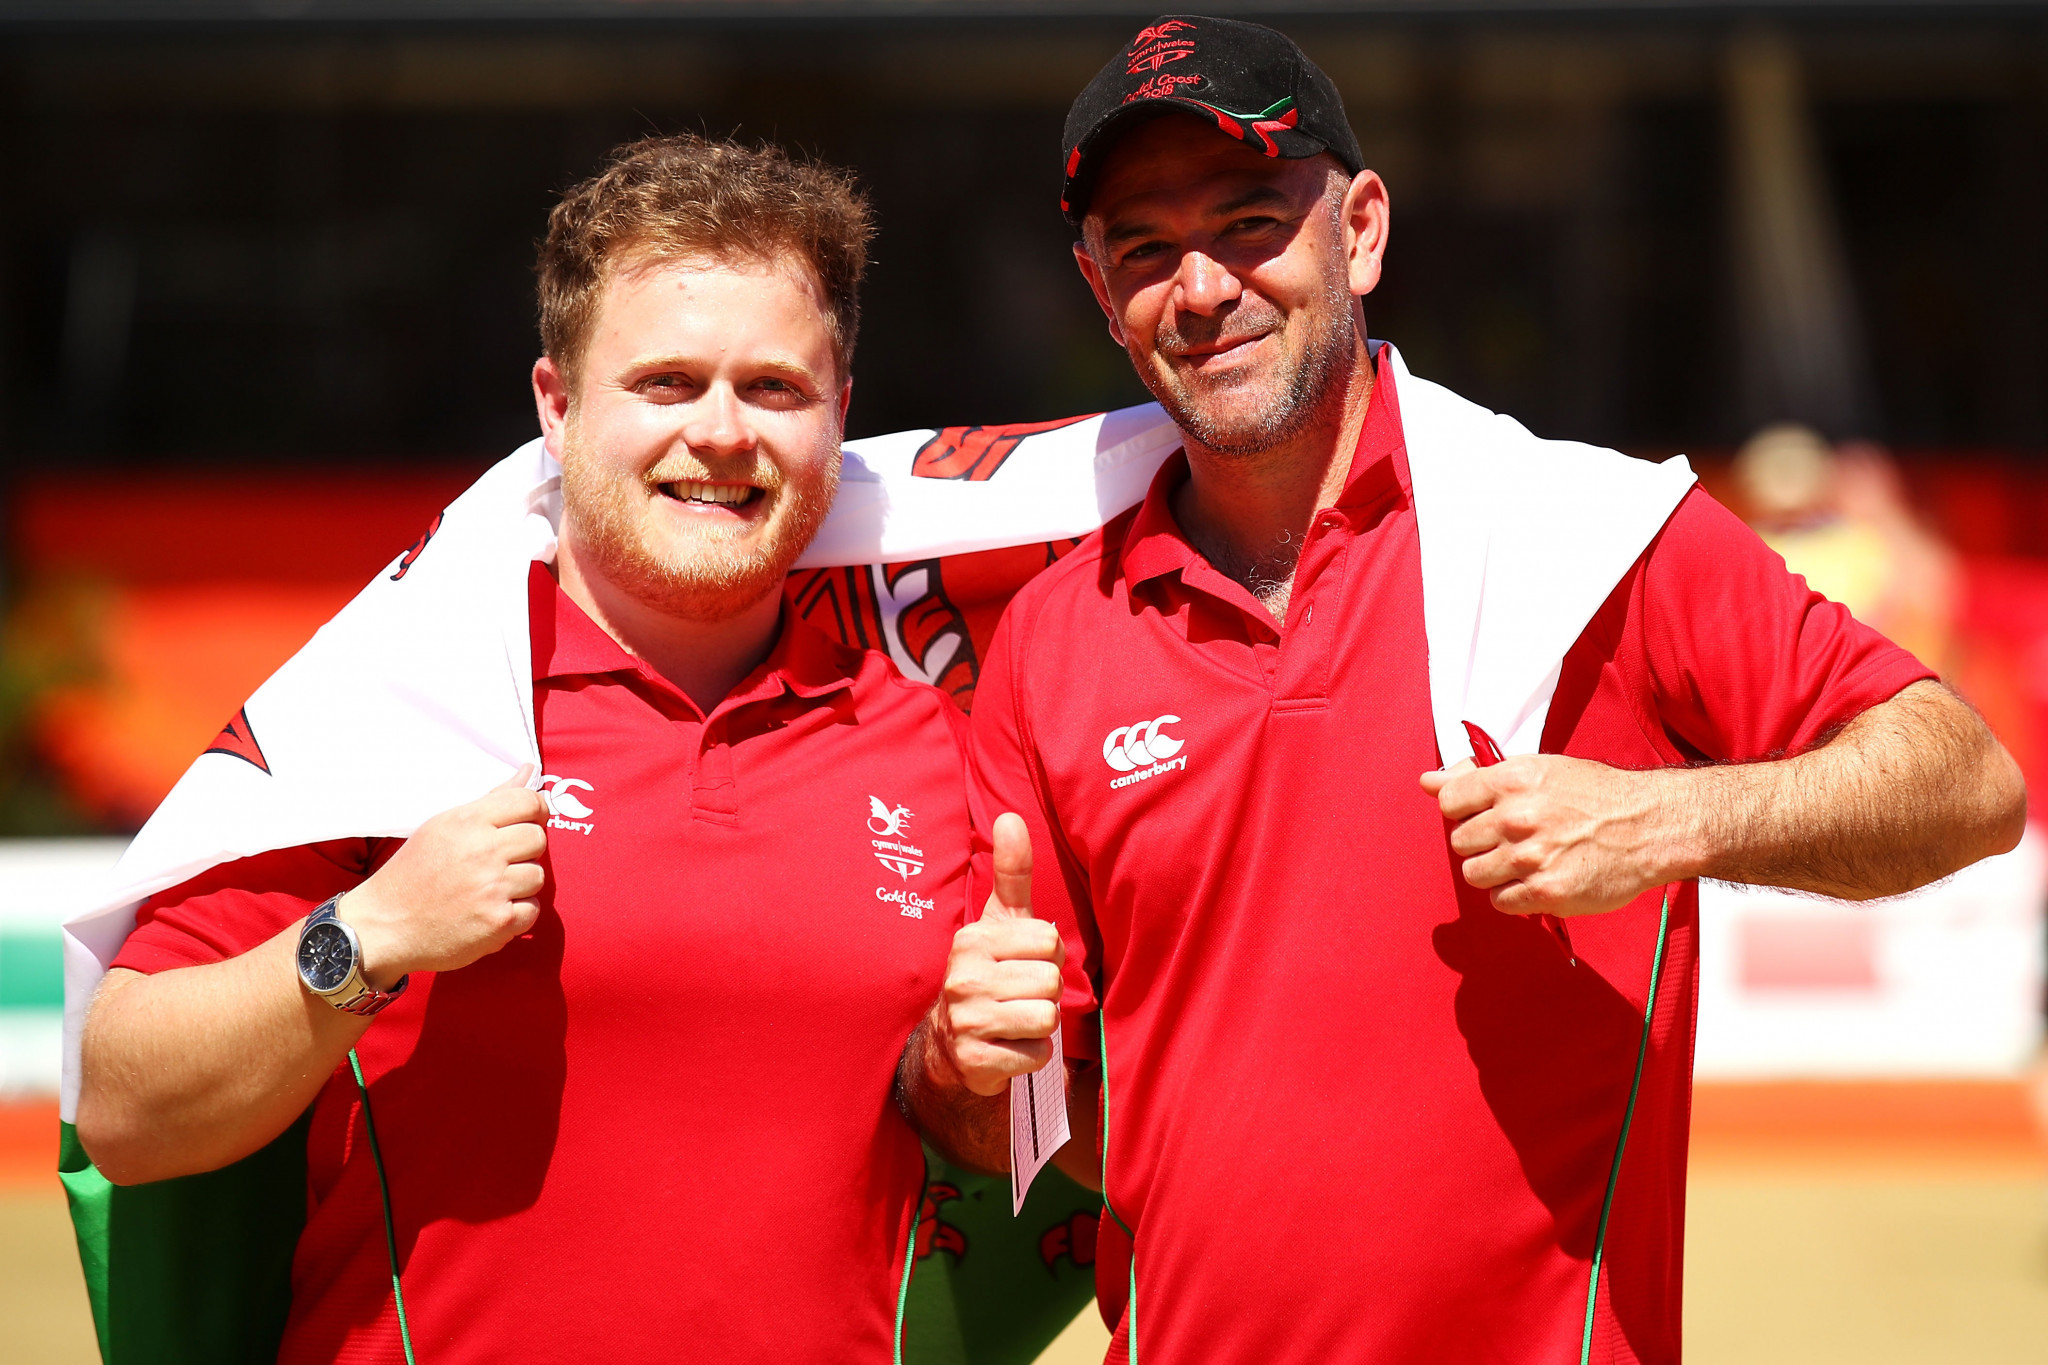 Wales stun Scotland in lawn bowls as Cook Islands win first ever Commonwealth Games medal